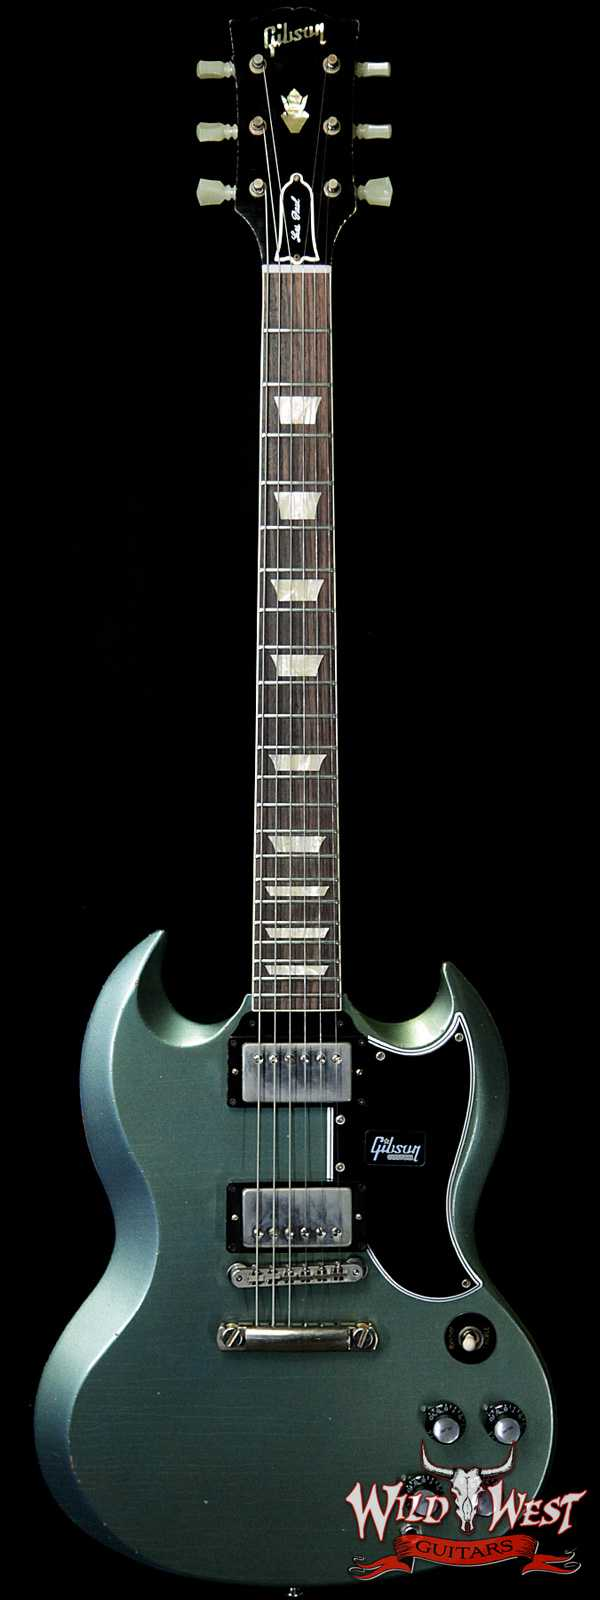 Gibson Custom Shop '61 1961 SG Standard Reissue Stop Bar Aged Metallic Teal 6.25 LBS